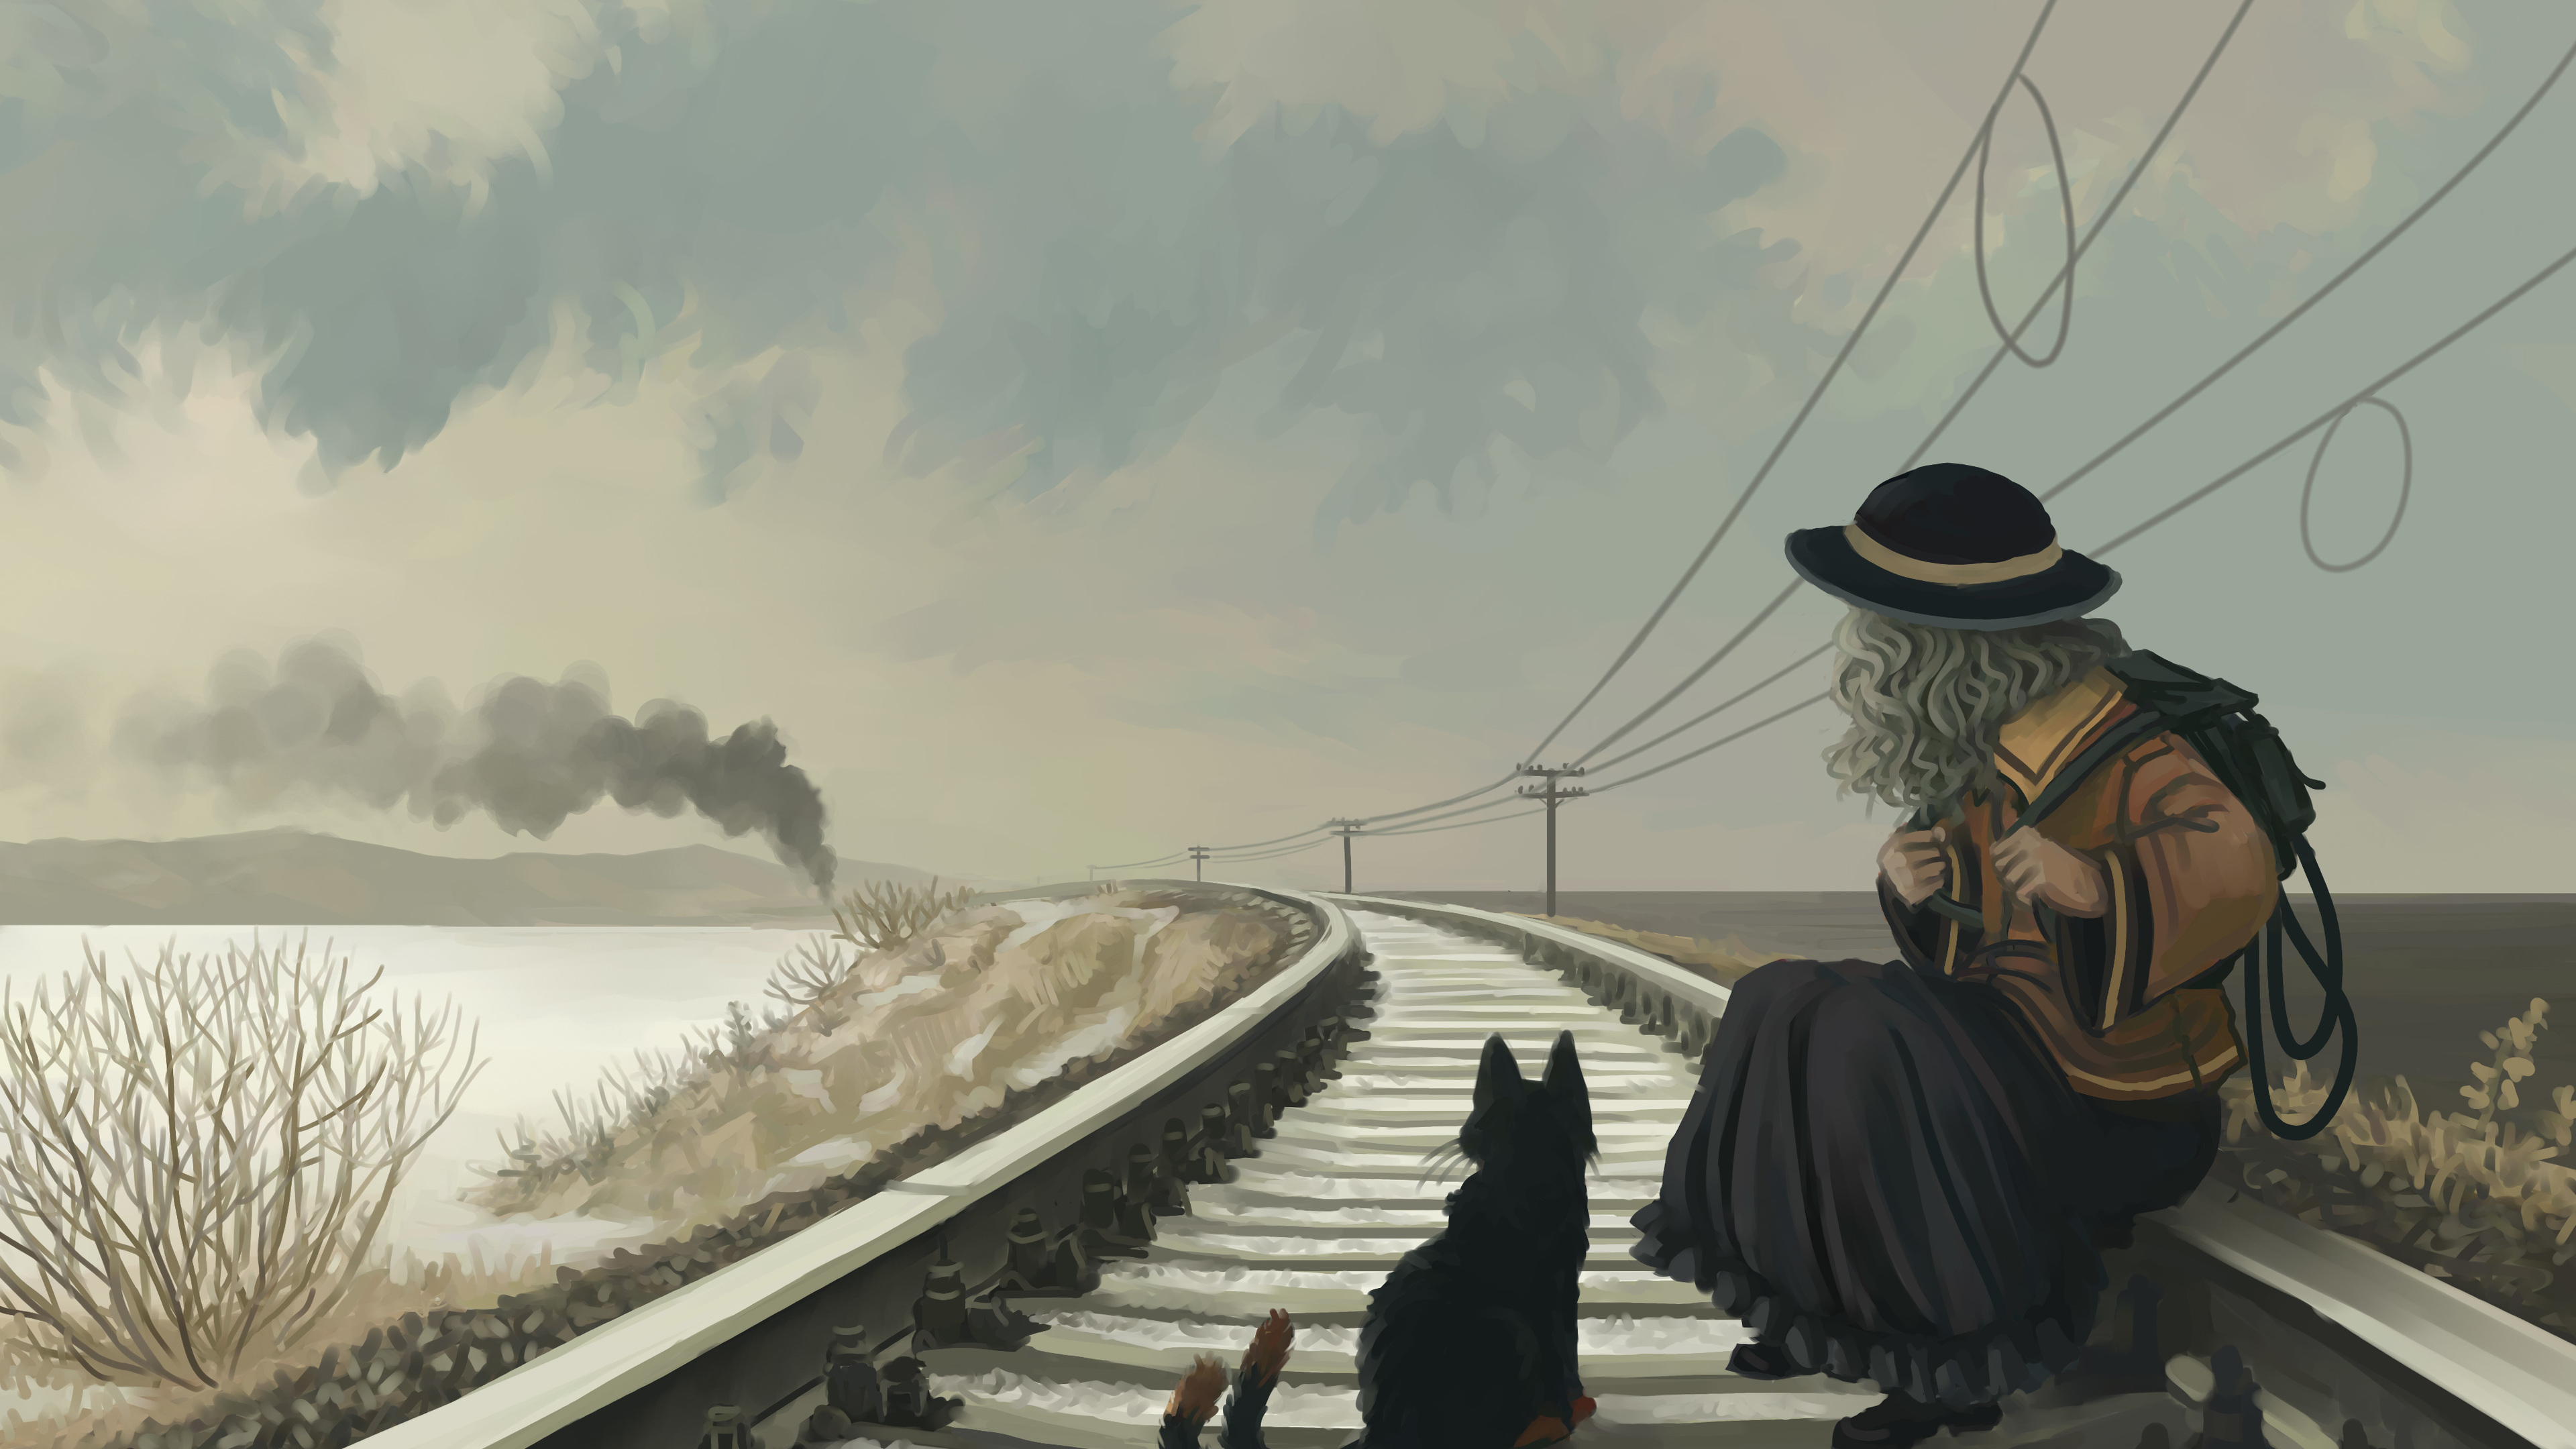 anime girl with cat on railroad 1541973924 - Anime Girl With Cat On Railroad - railroad wallpapers, hd-wallpapers, cat wallpapers, anime wallpapers, anime girl wallpapers, 4k-wallpapers